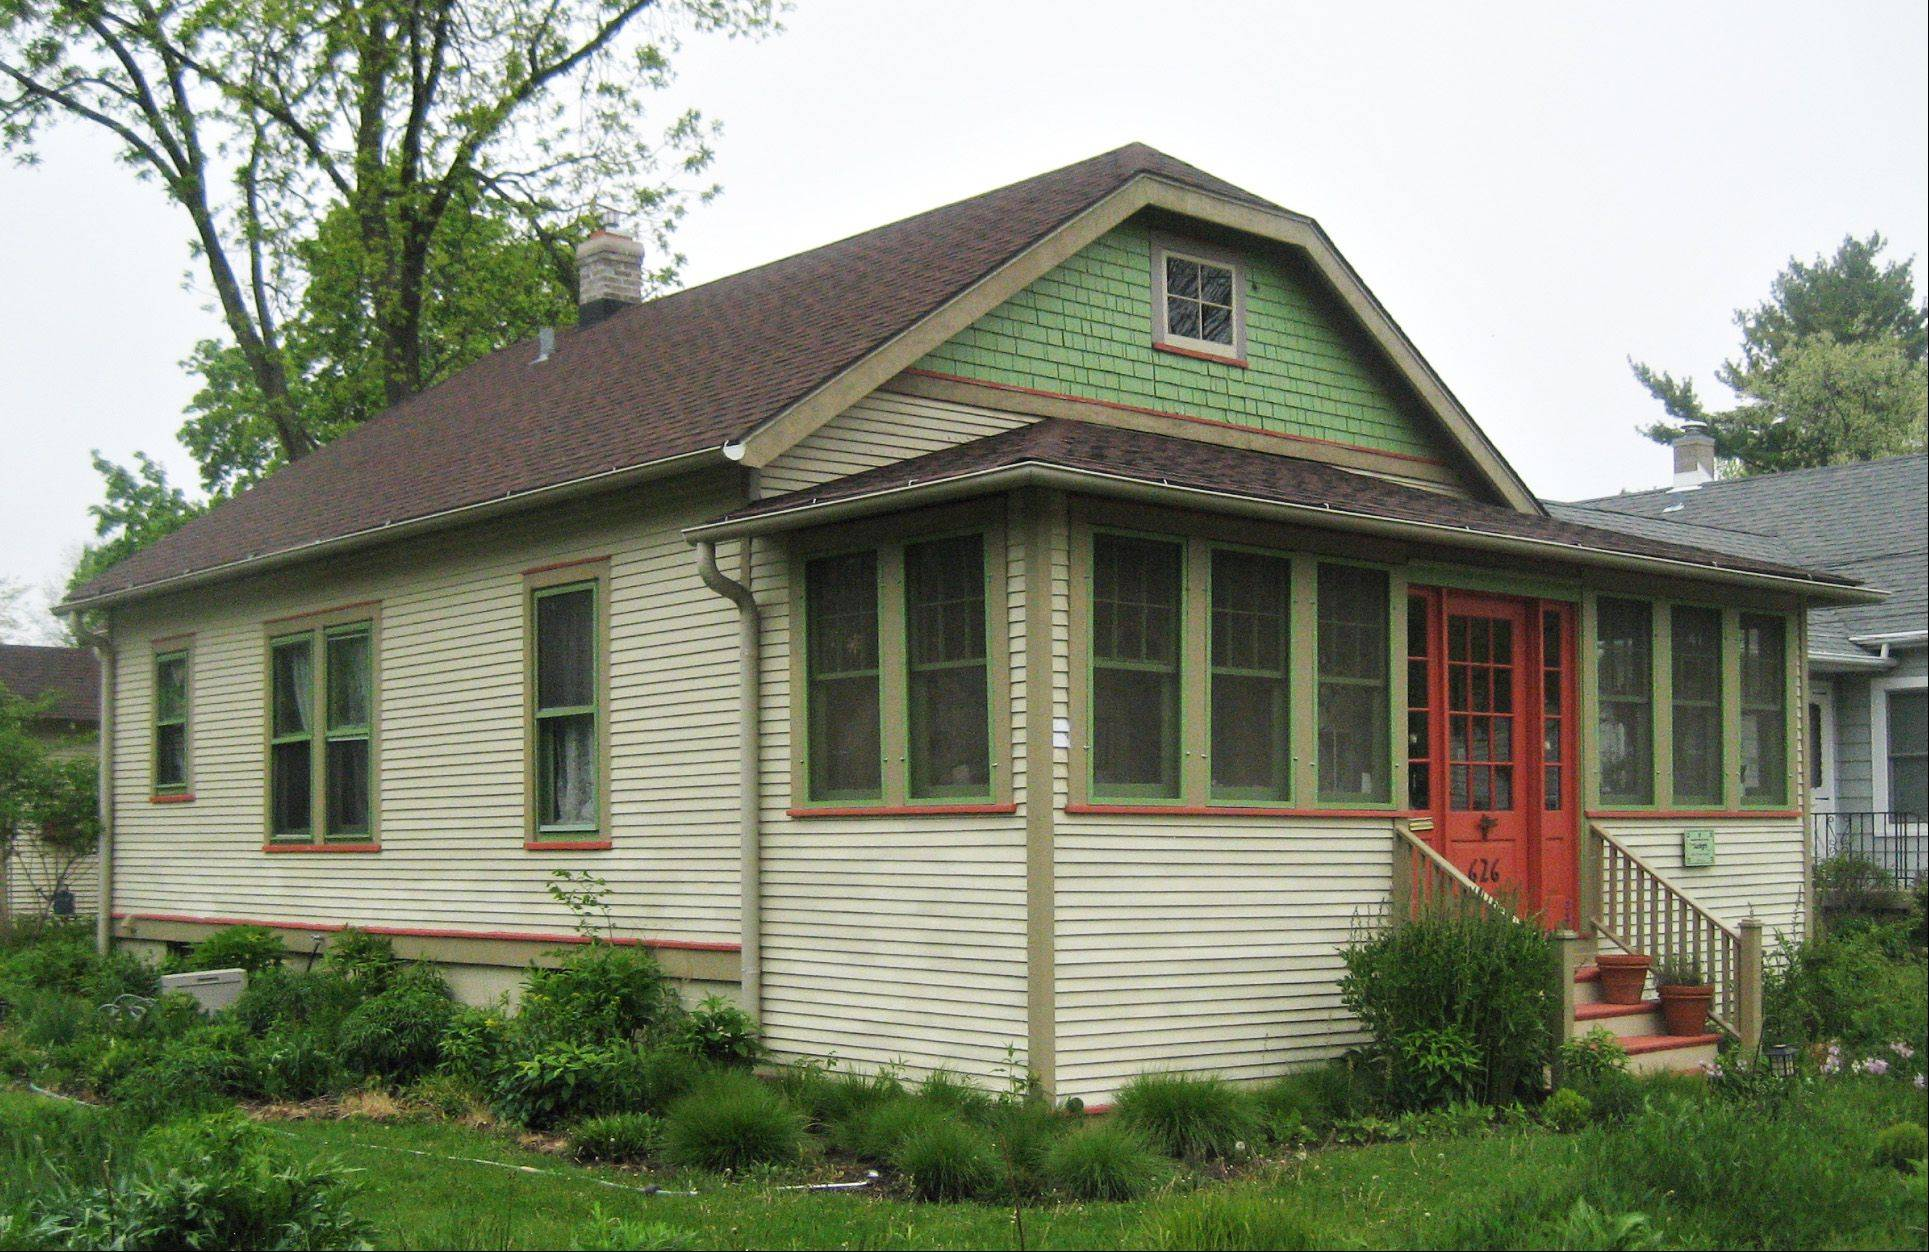 This house at 626 Orange Street will be on the 2012 Historic Elgin House Tour.